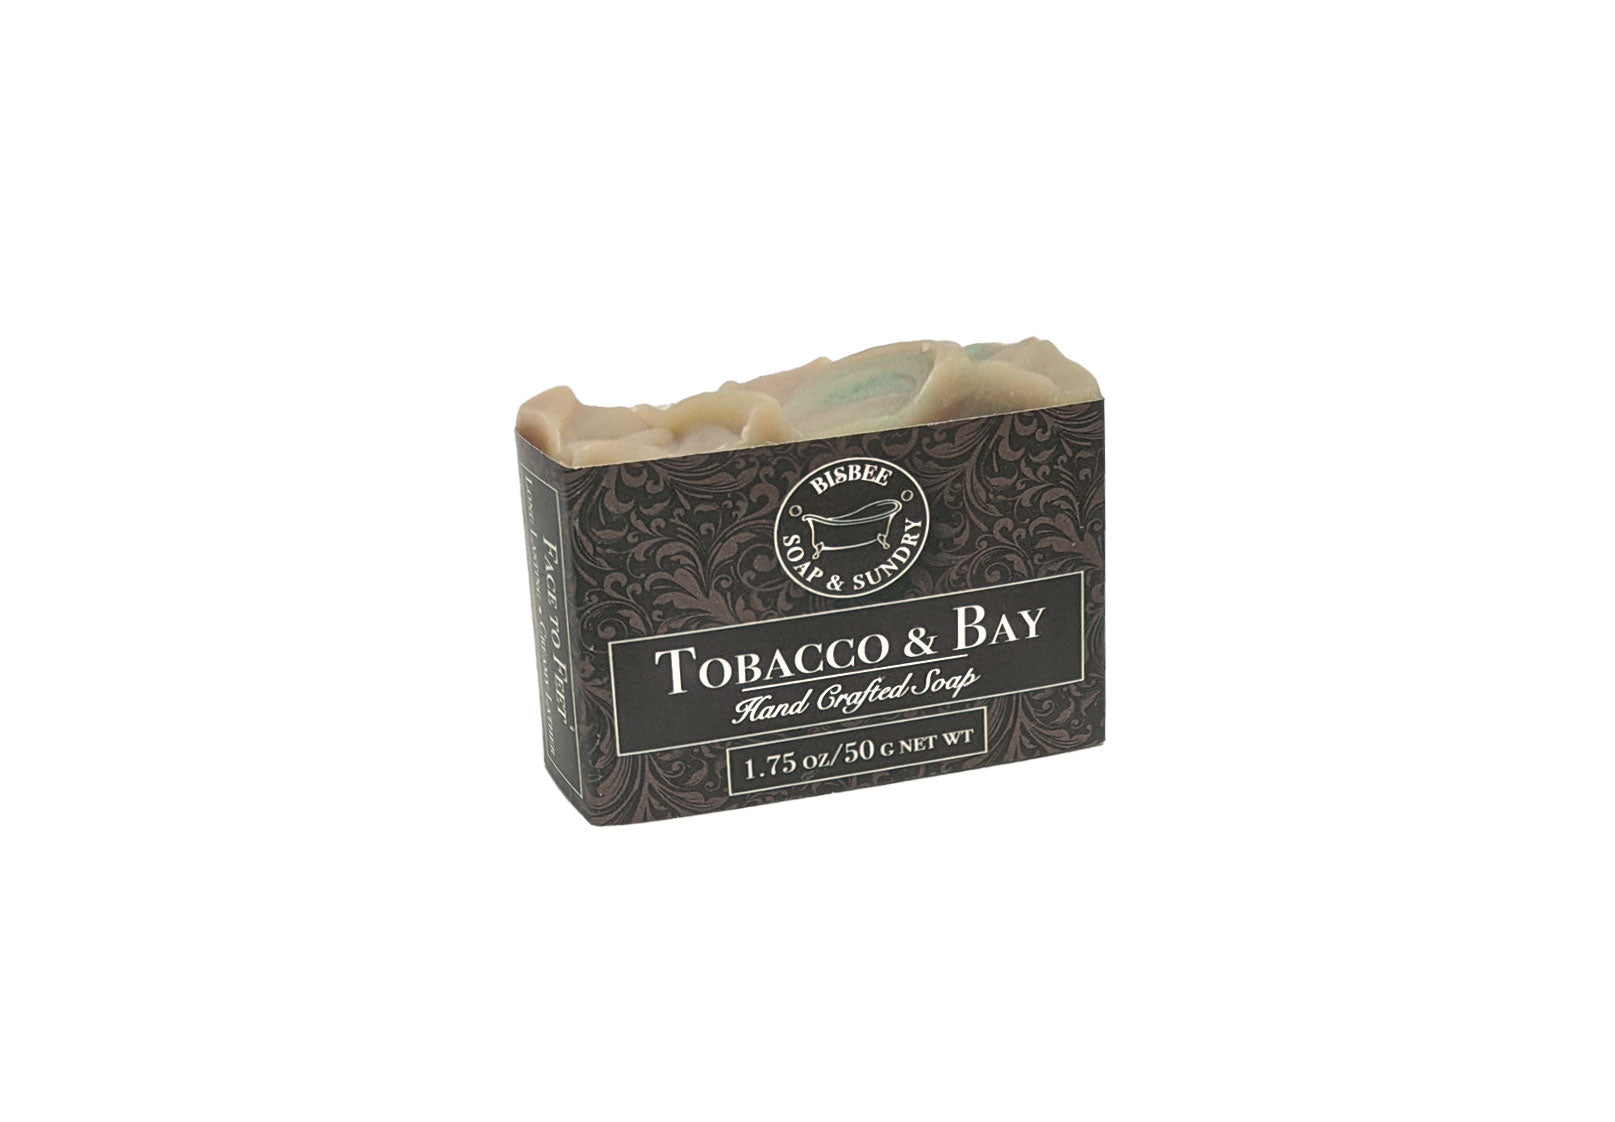 Tobacco & Bay Handmade Mini Soap - 1.75 oz